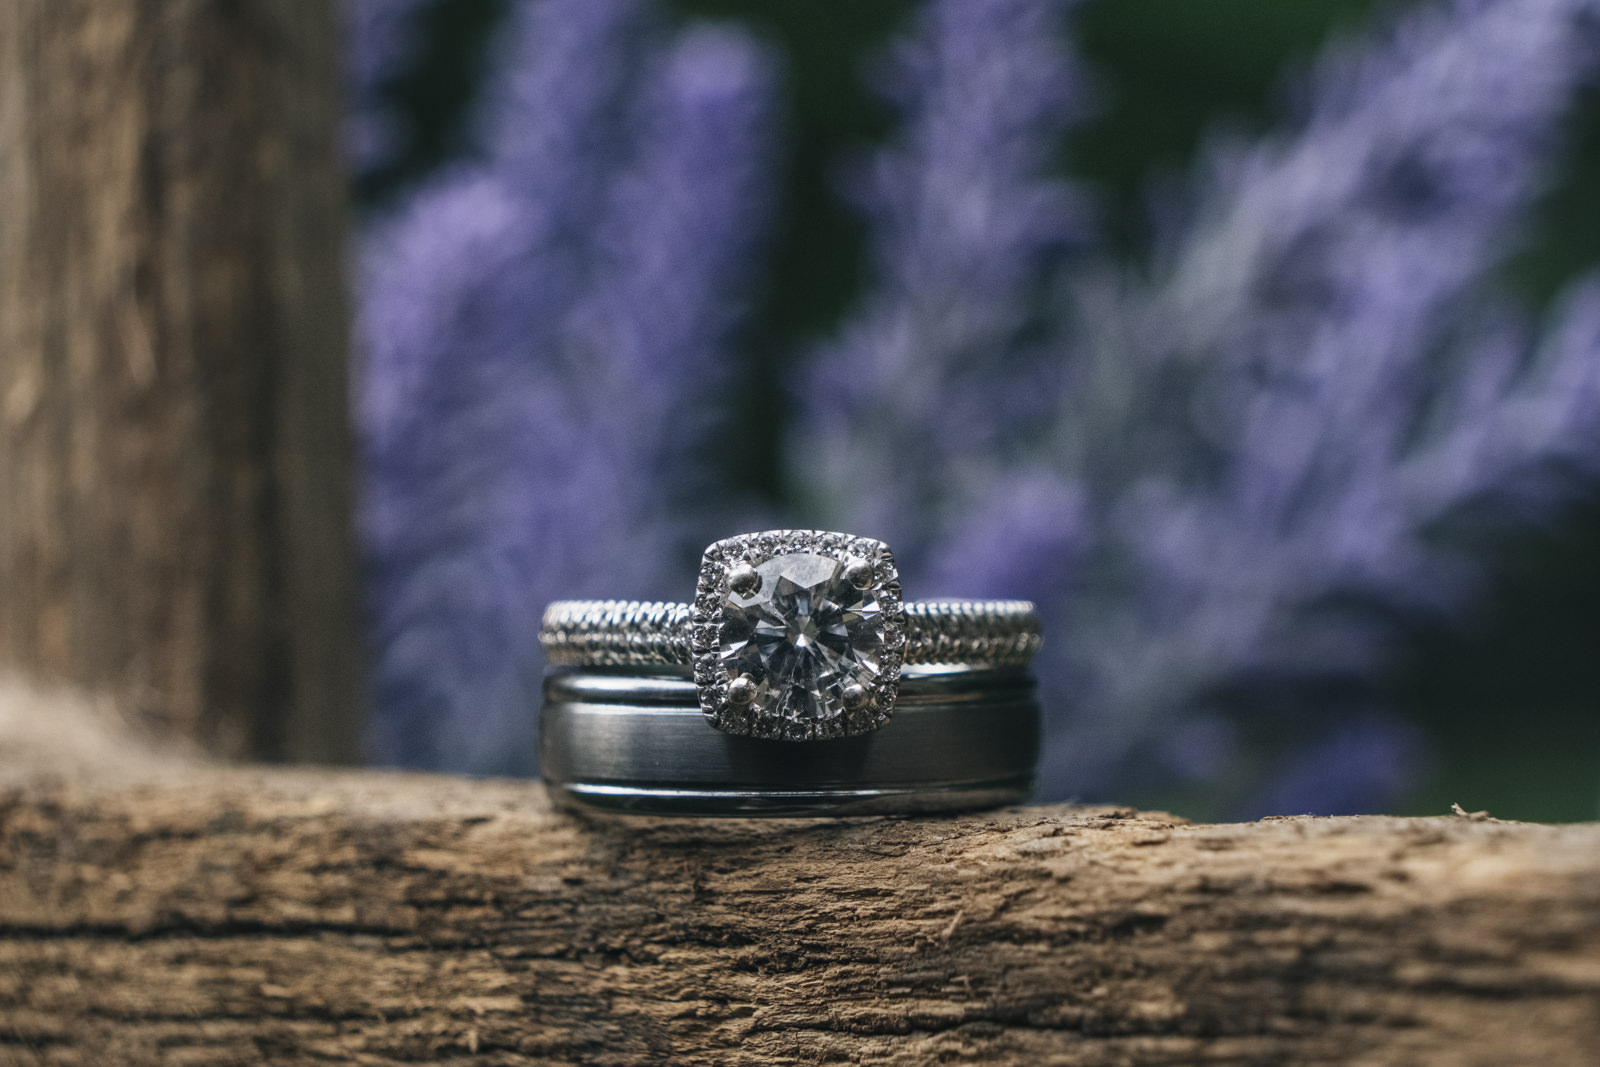 Detail photo of wedding bands.